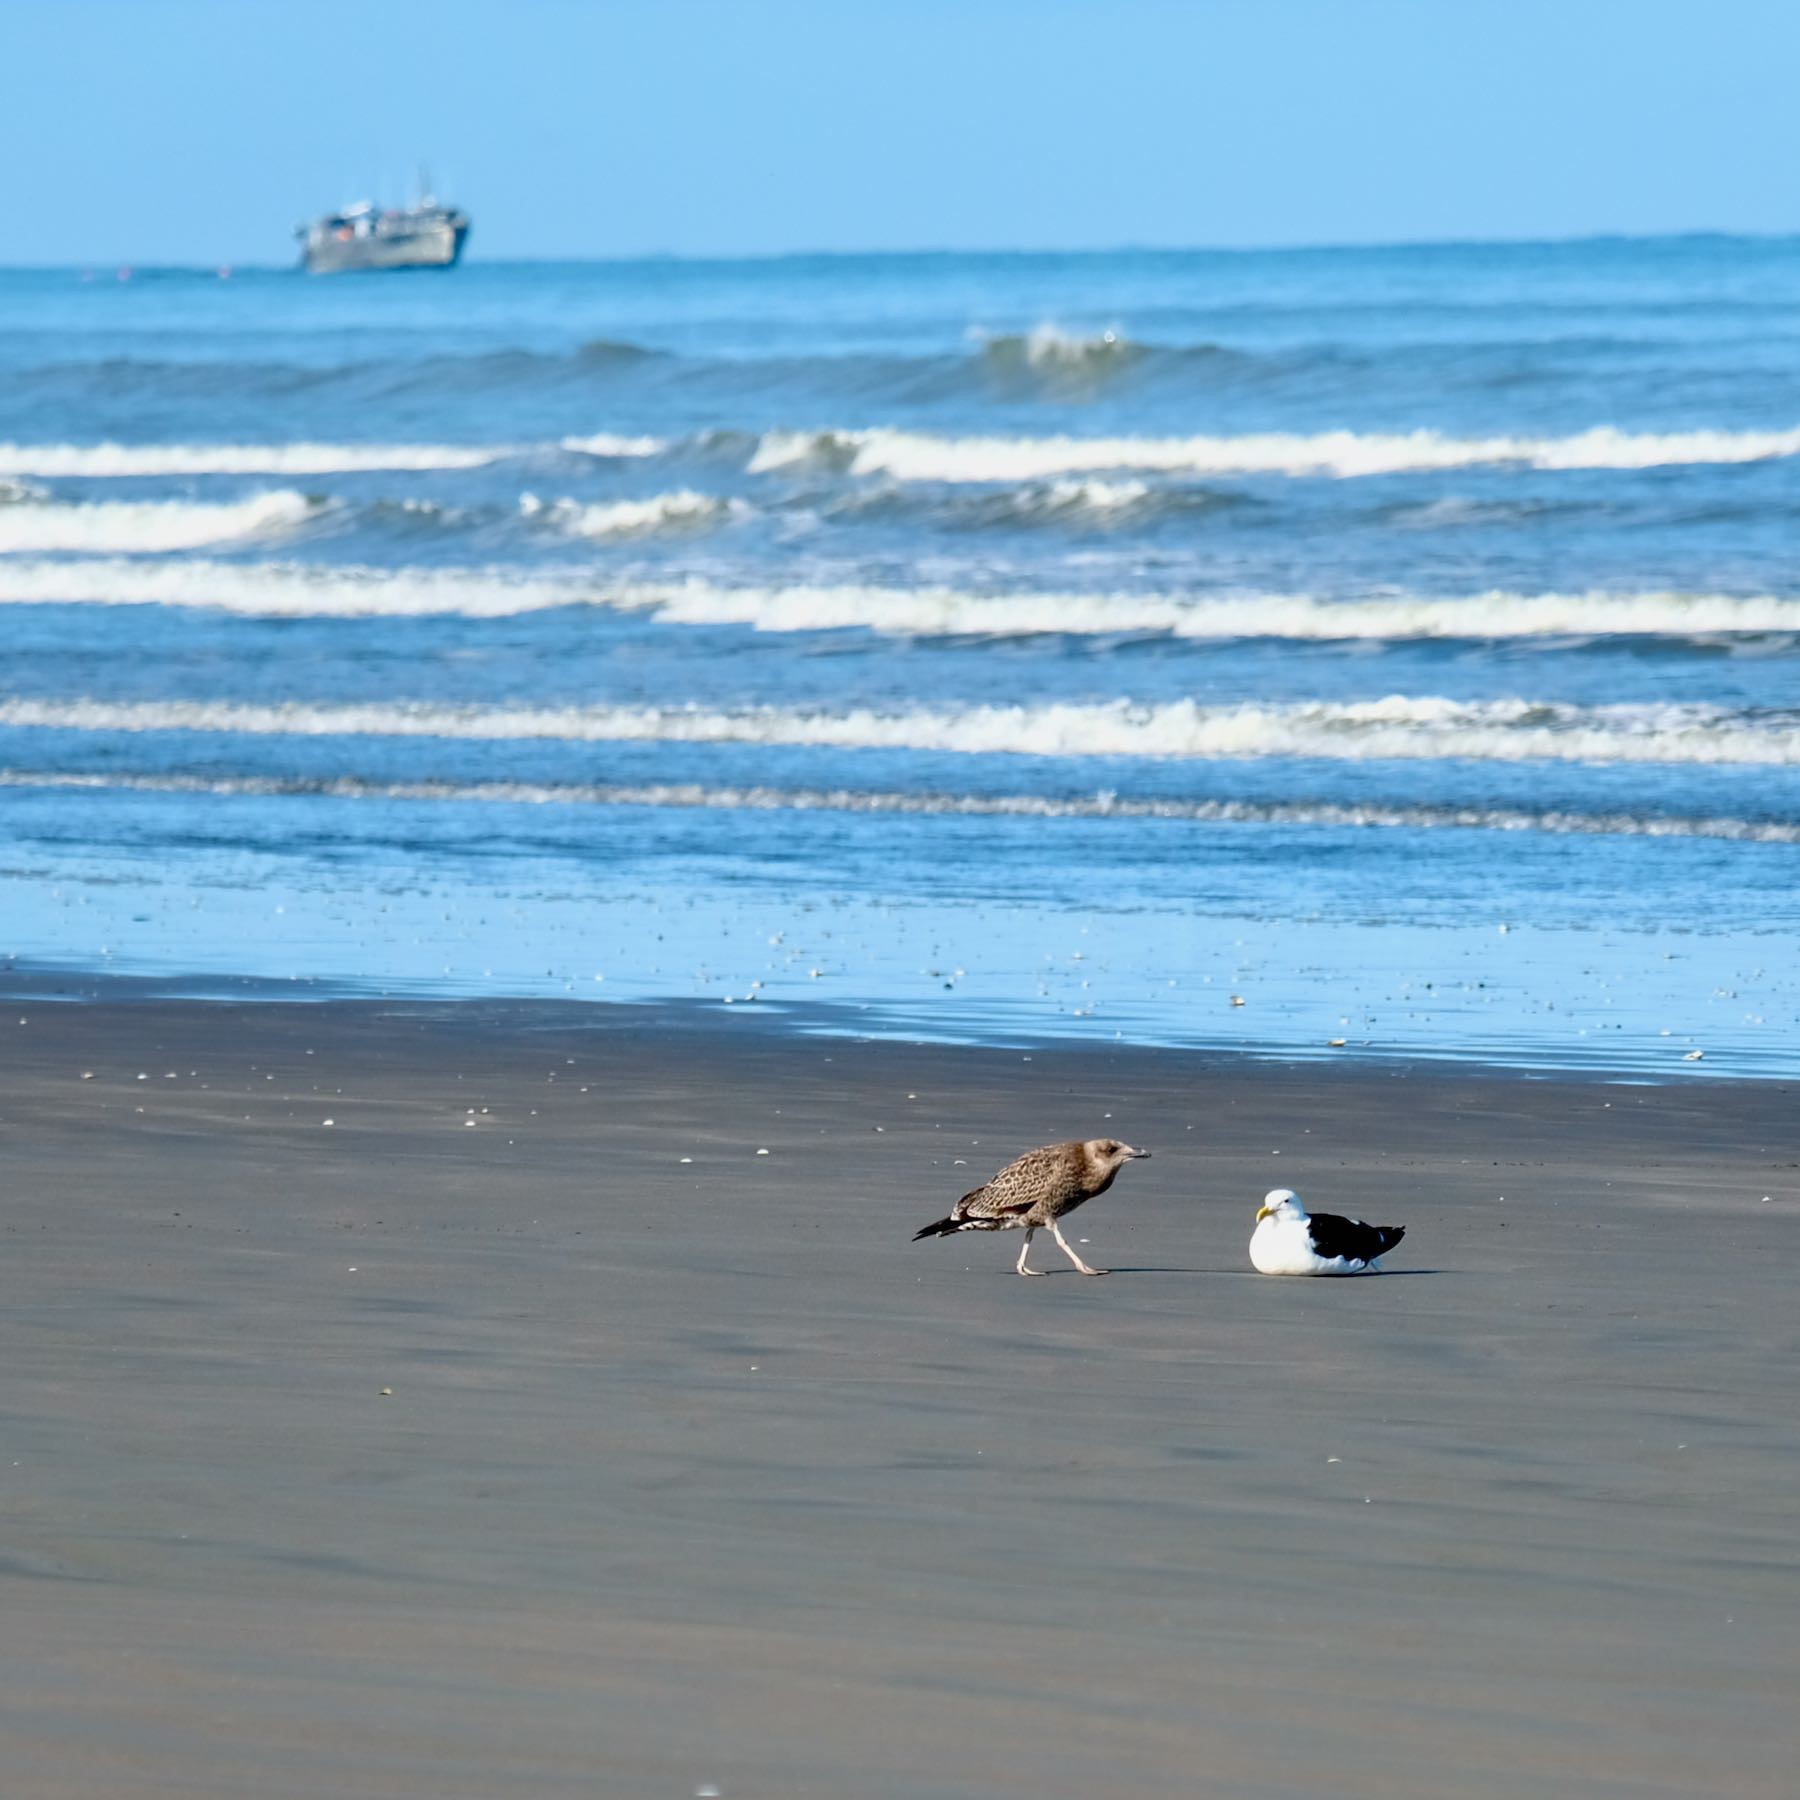 Two gulls in the foreground with a fish dredge in the distance.